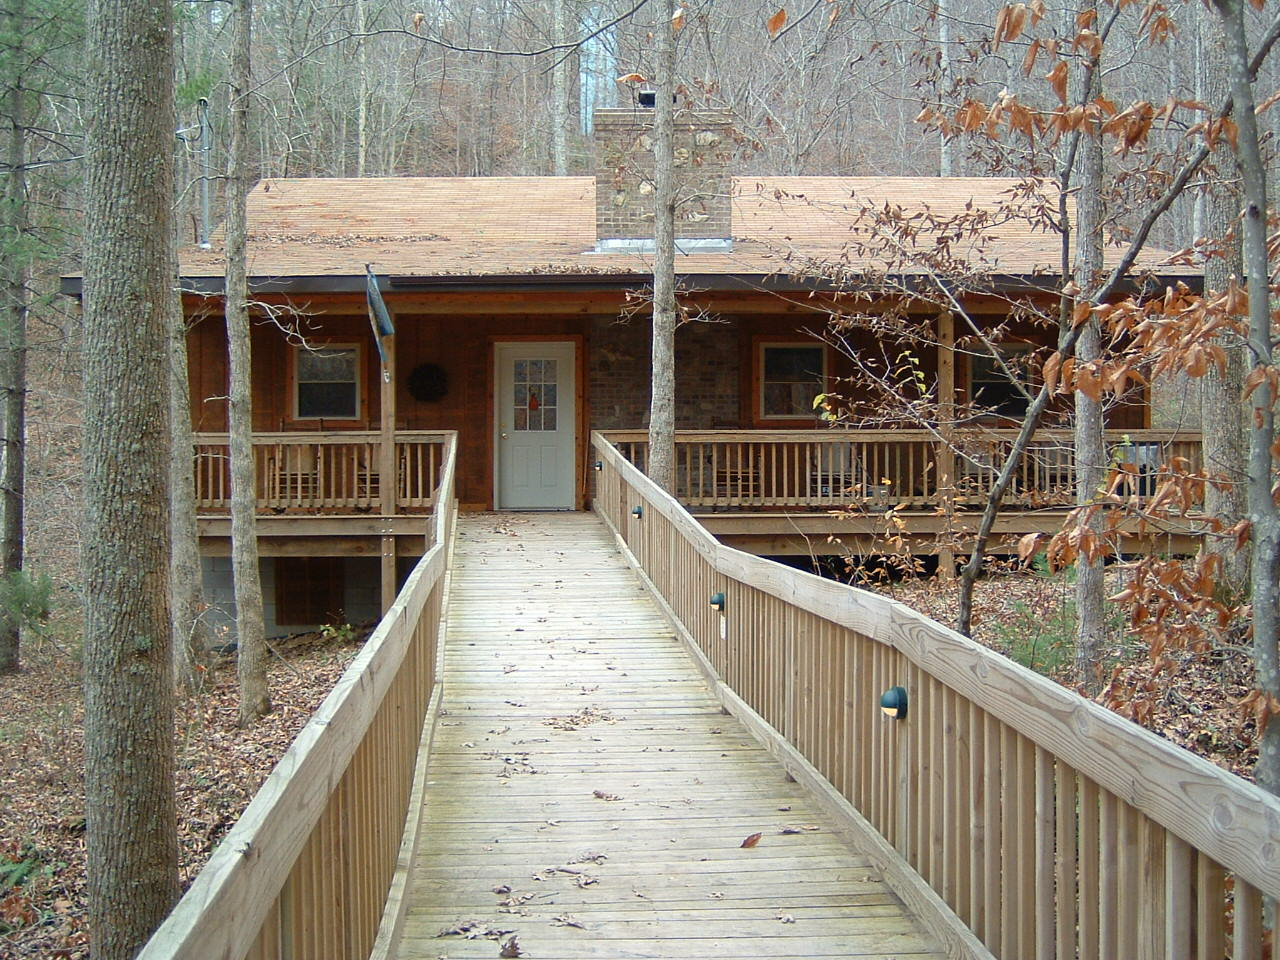 Cottage 1 – 4 bedrooms, 4 baths, full kitchen, outdoor grill